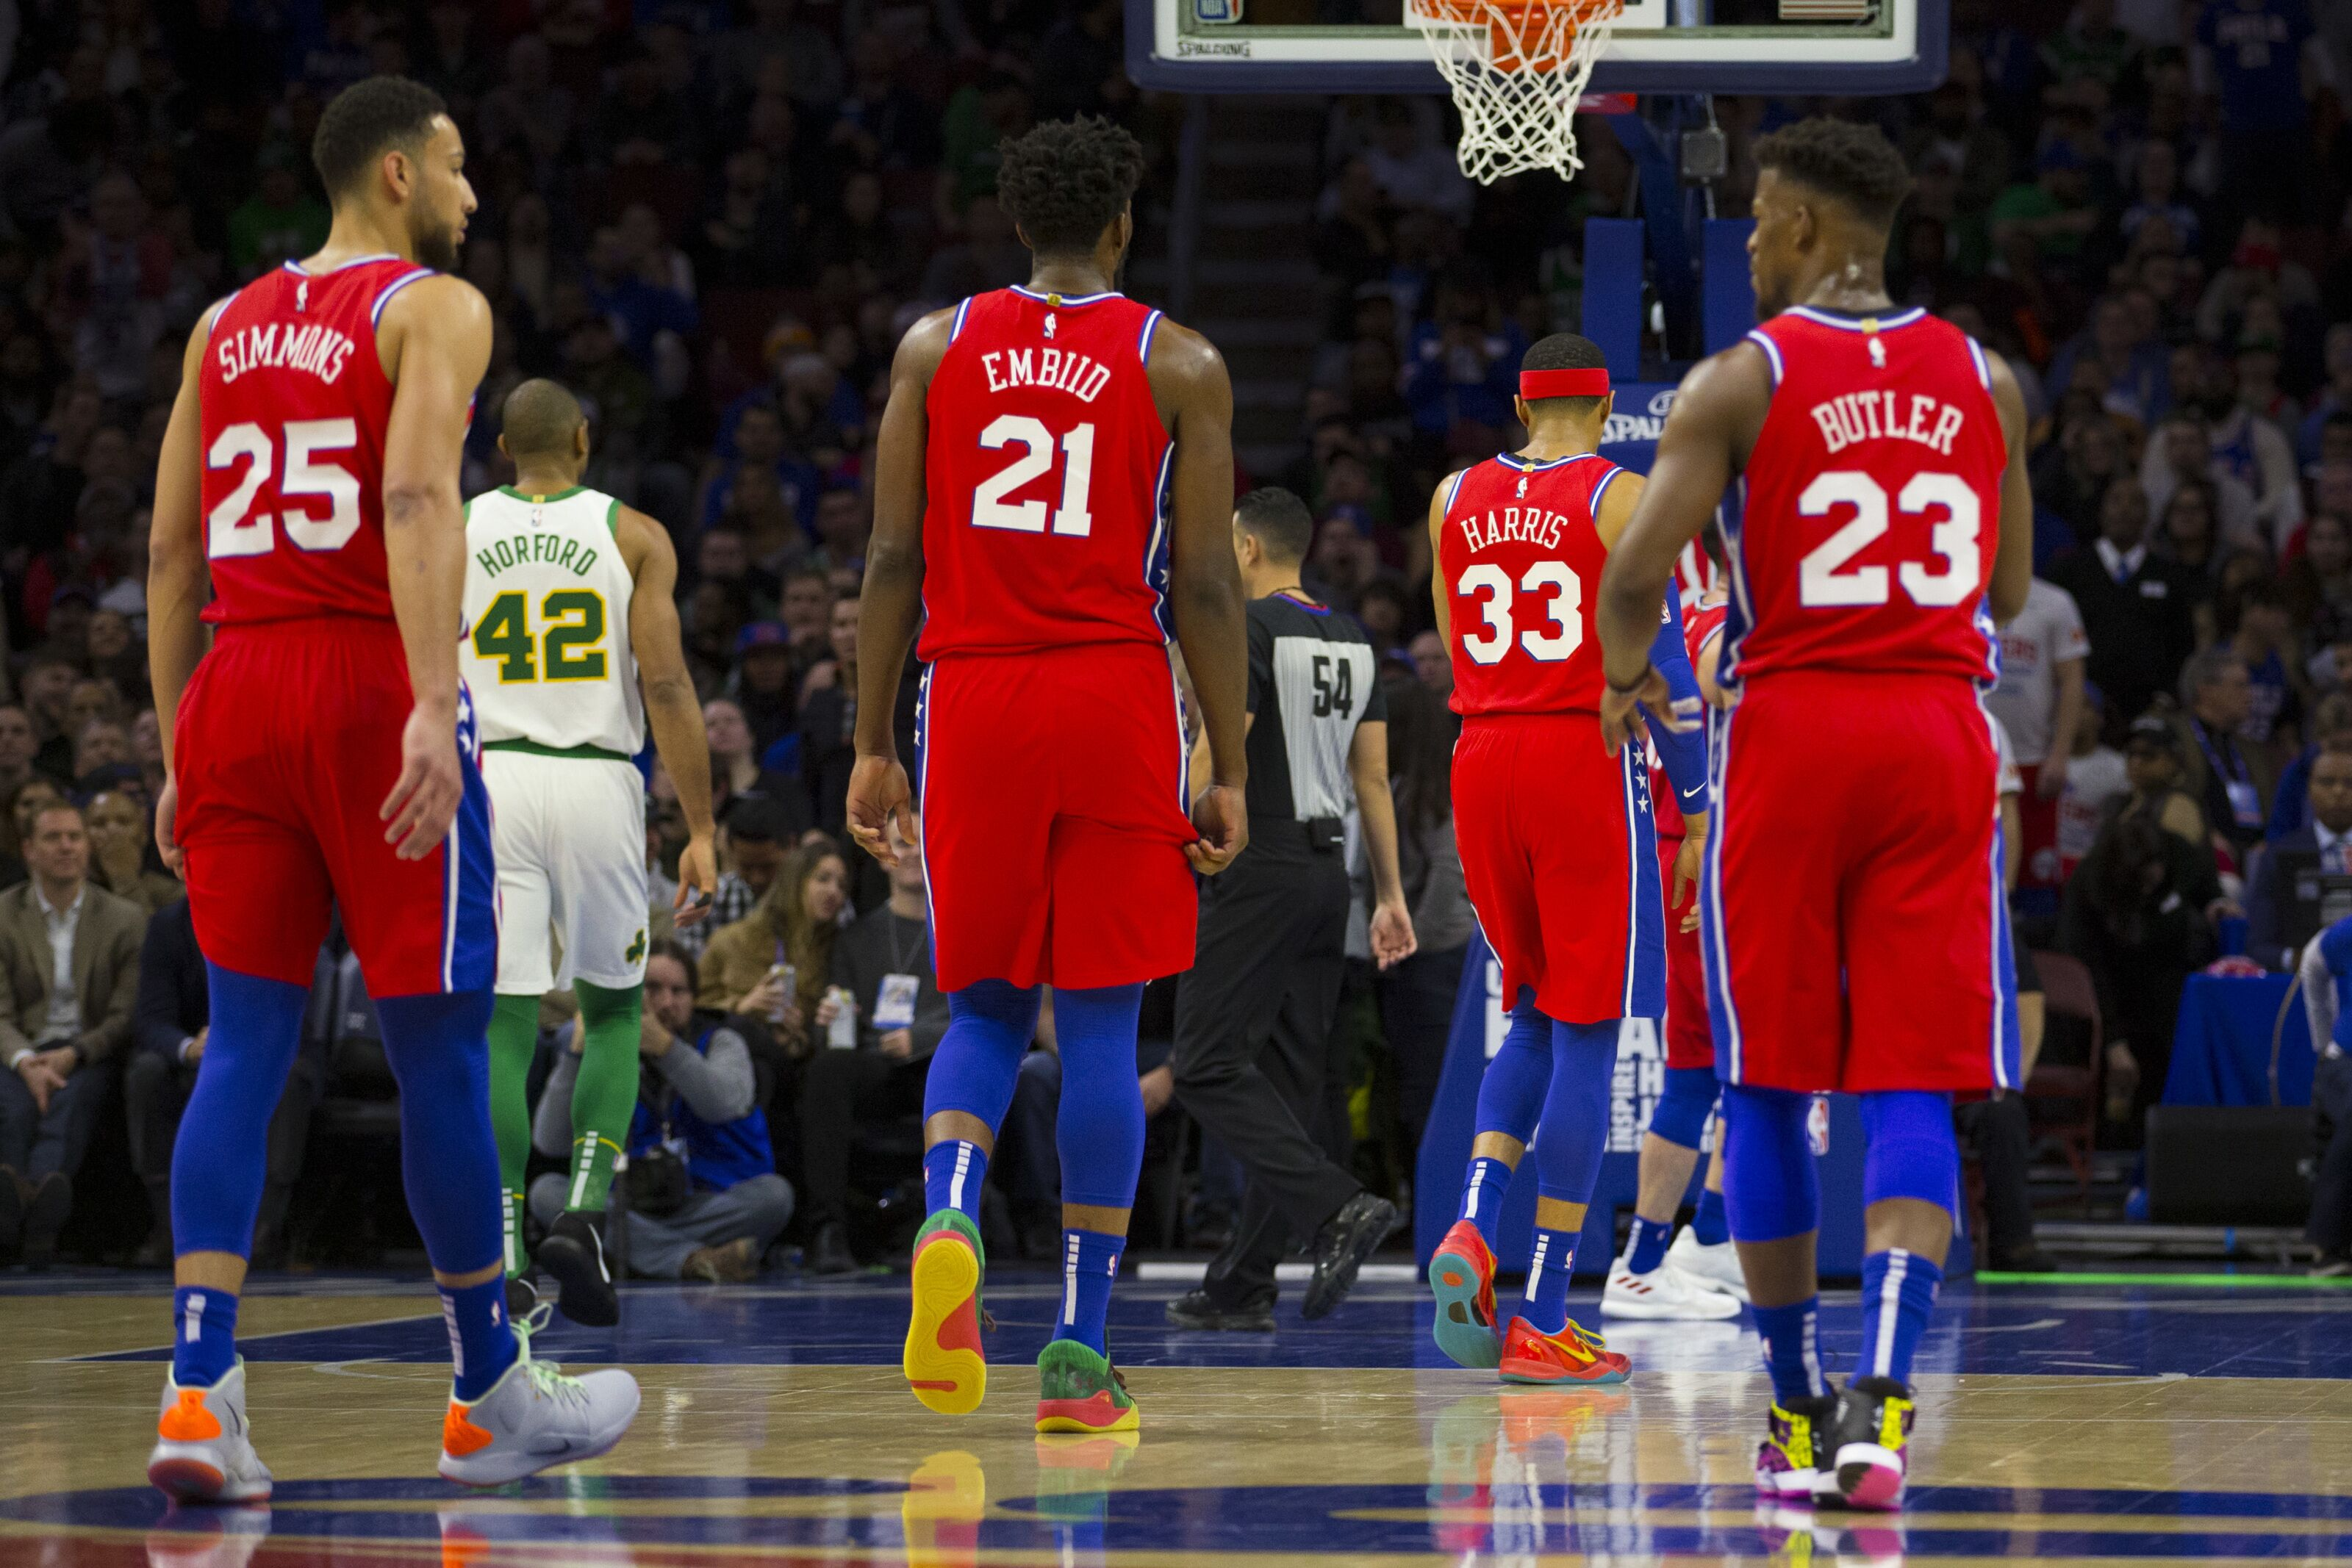 Philadelphia 76ers could have up to four All-Stars next season